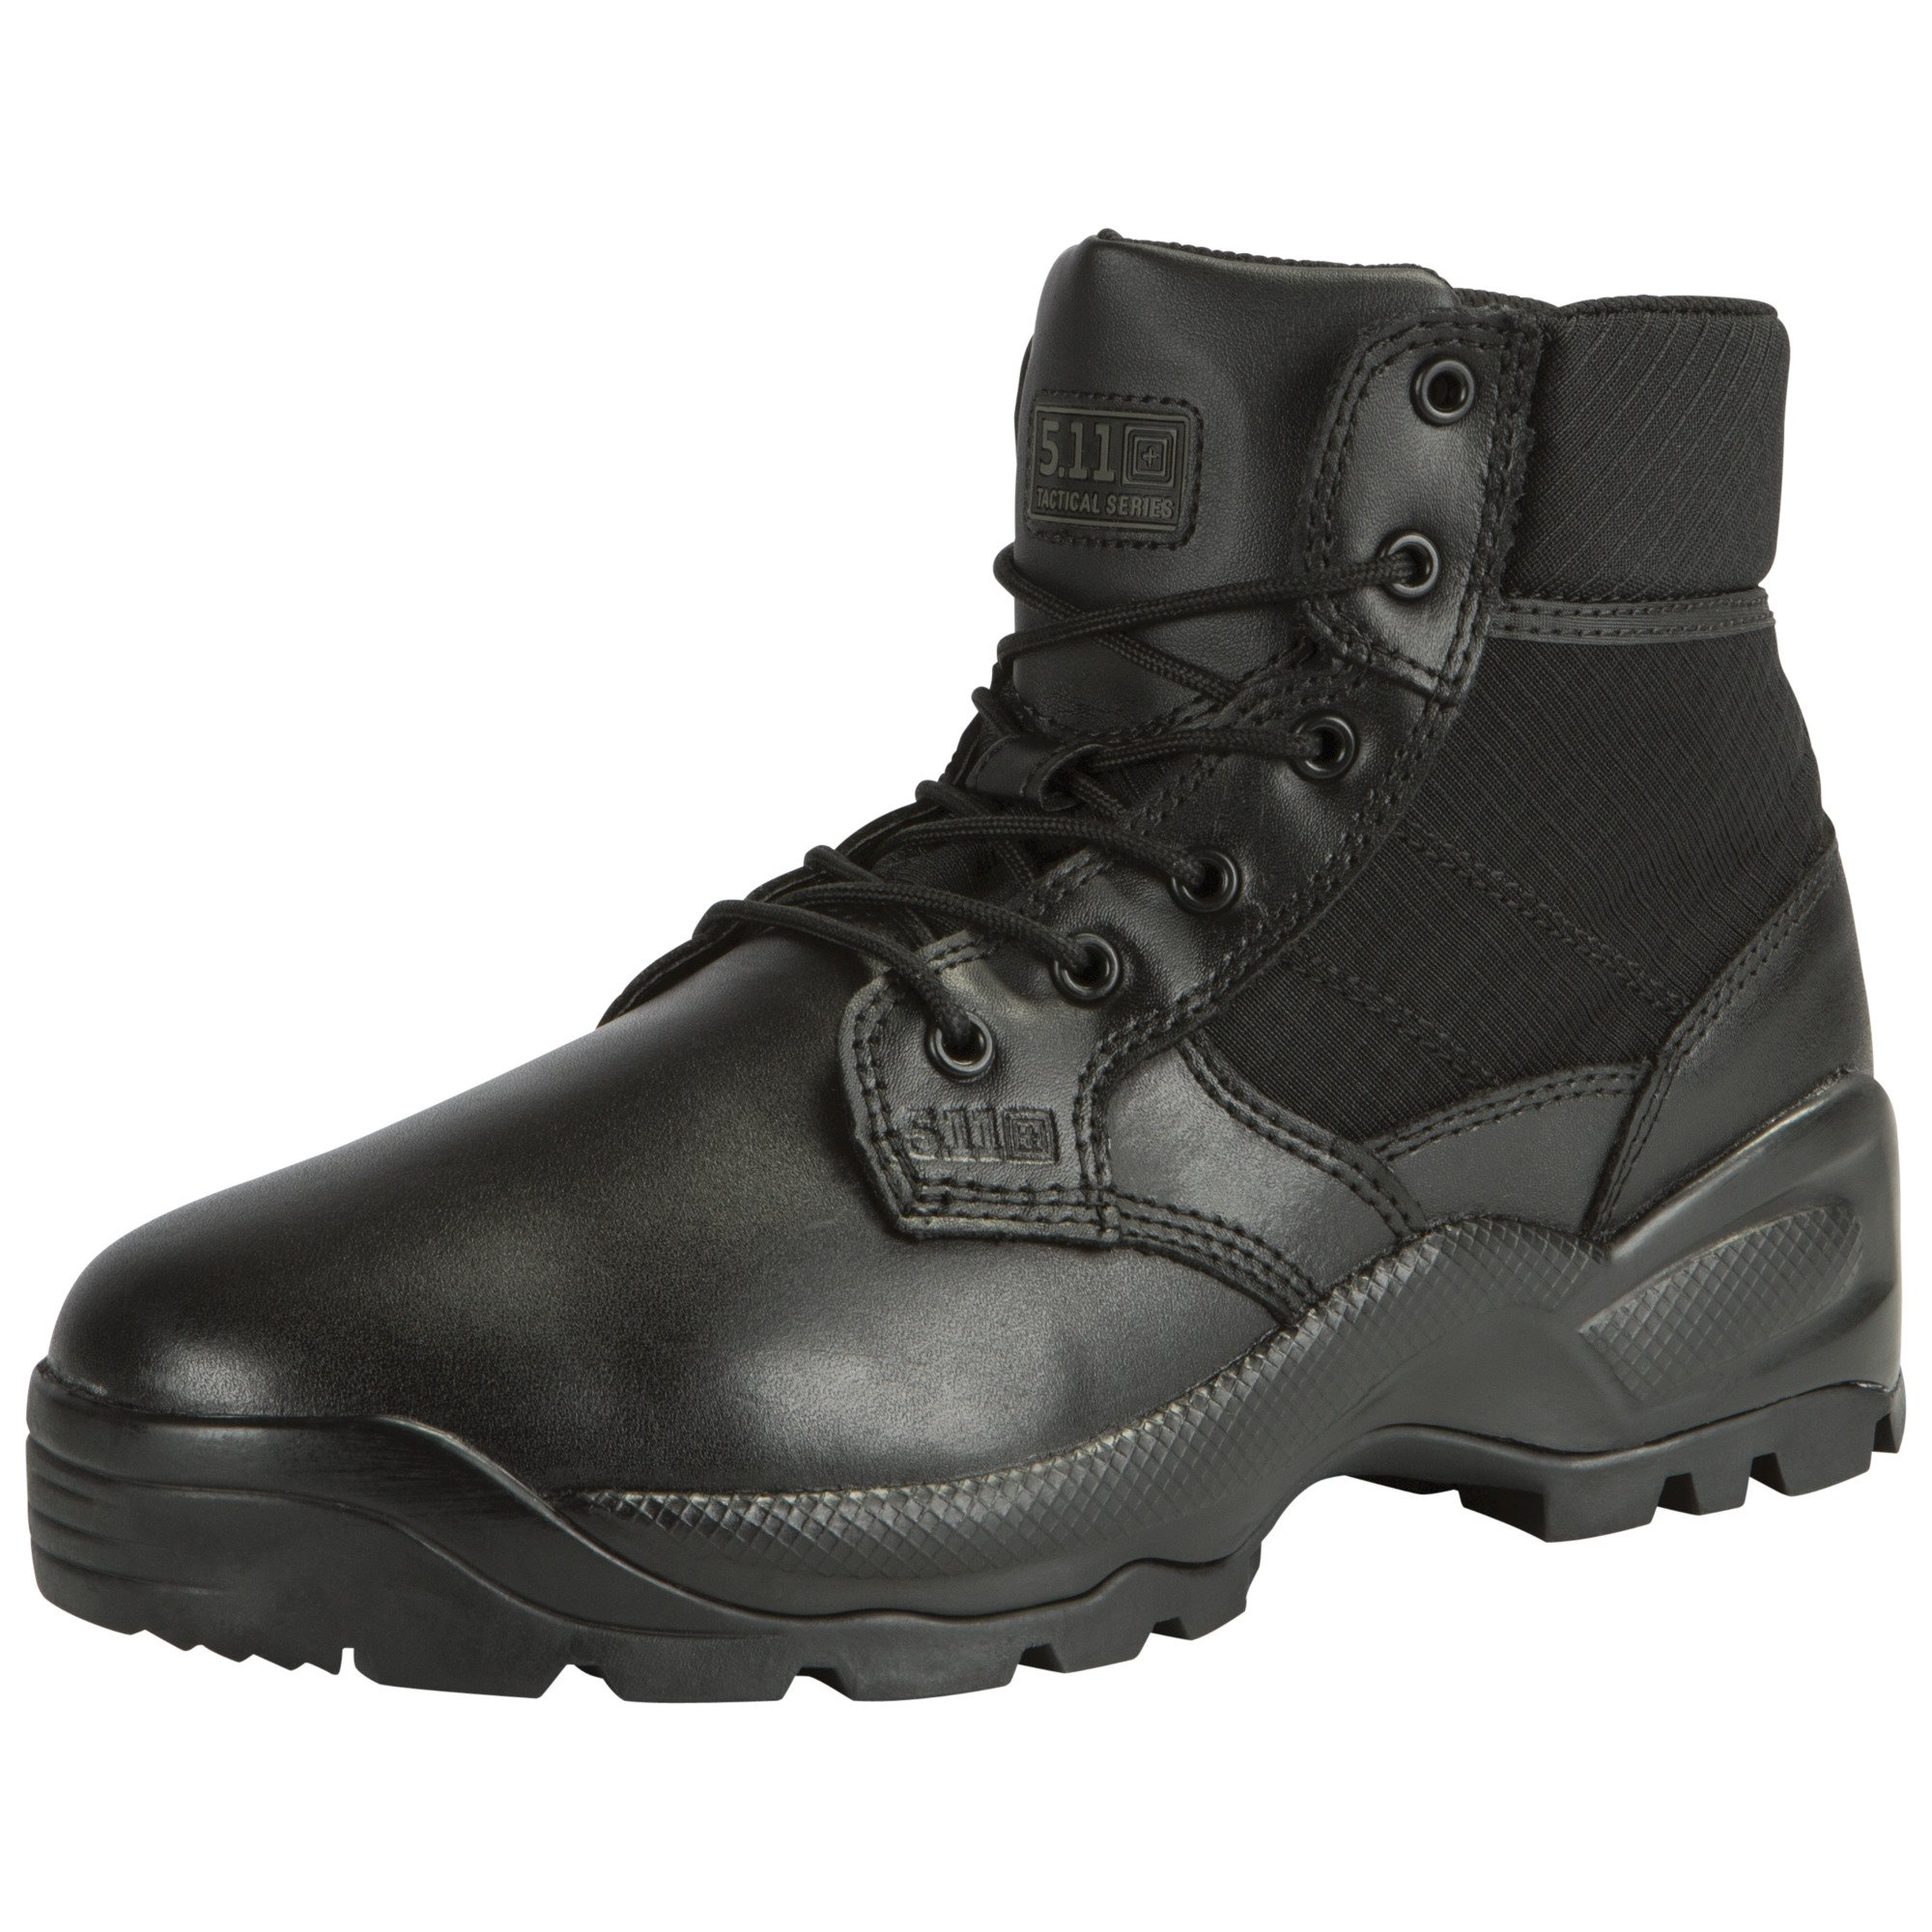 5.11 Tactical Men's Speed 2.0 8 Inch Side Zip Tactical Boot,Black,7 2E US